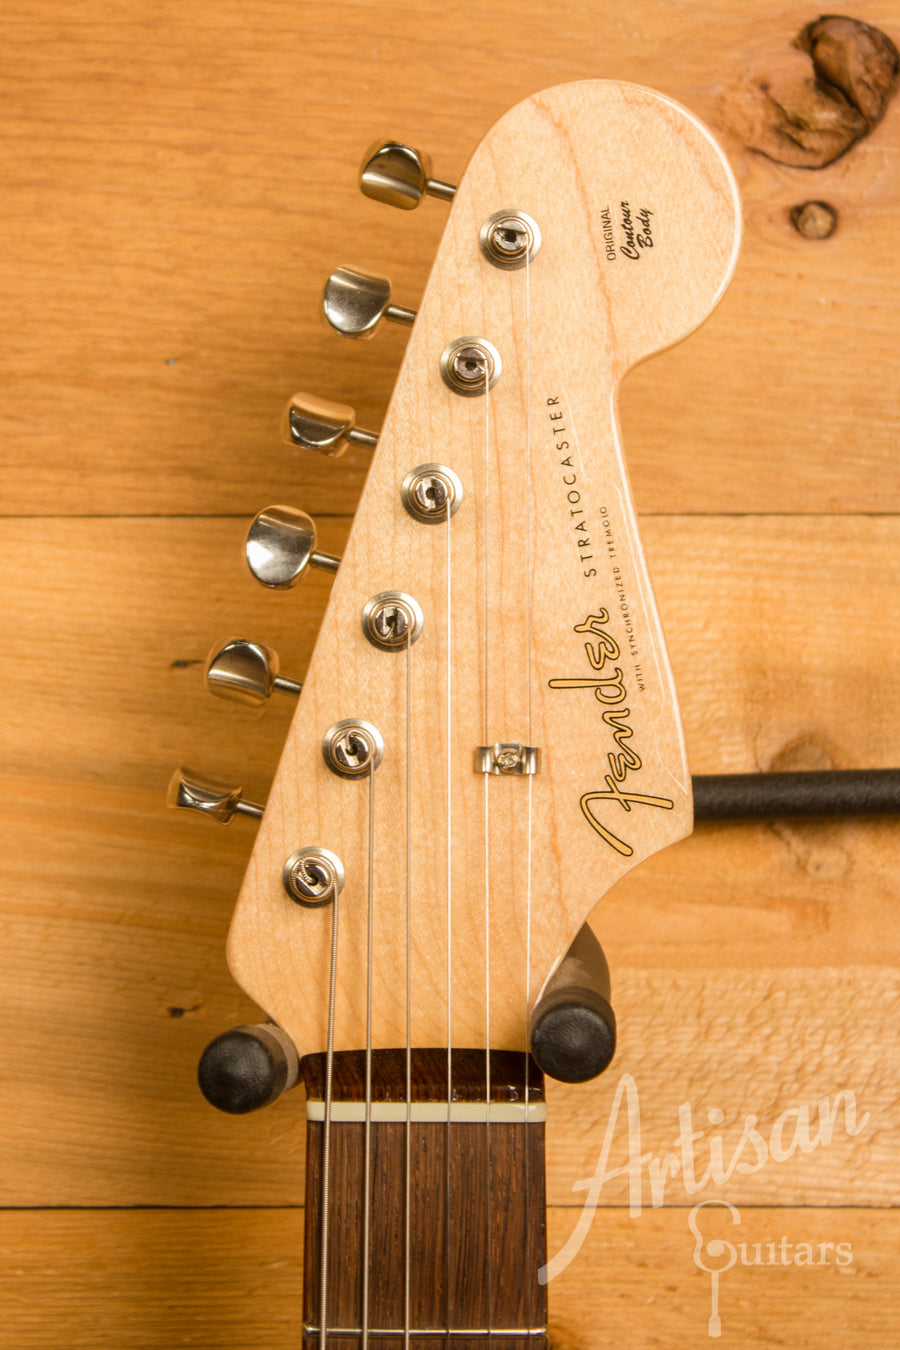 Fender Custom Shop 60's NOS Stratocaster Time Machine Series Pre-Owned 2007 ID-11620